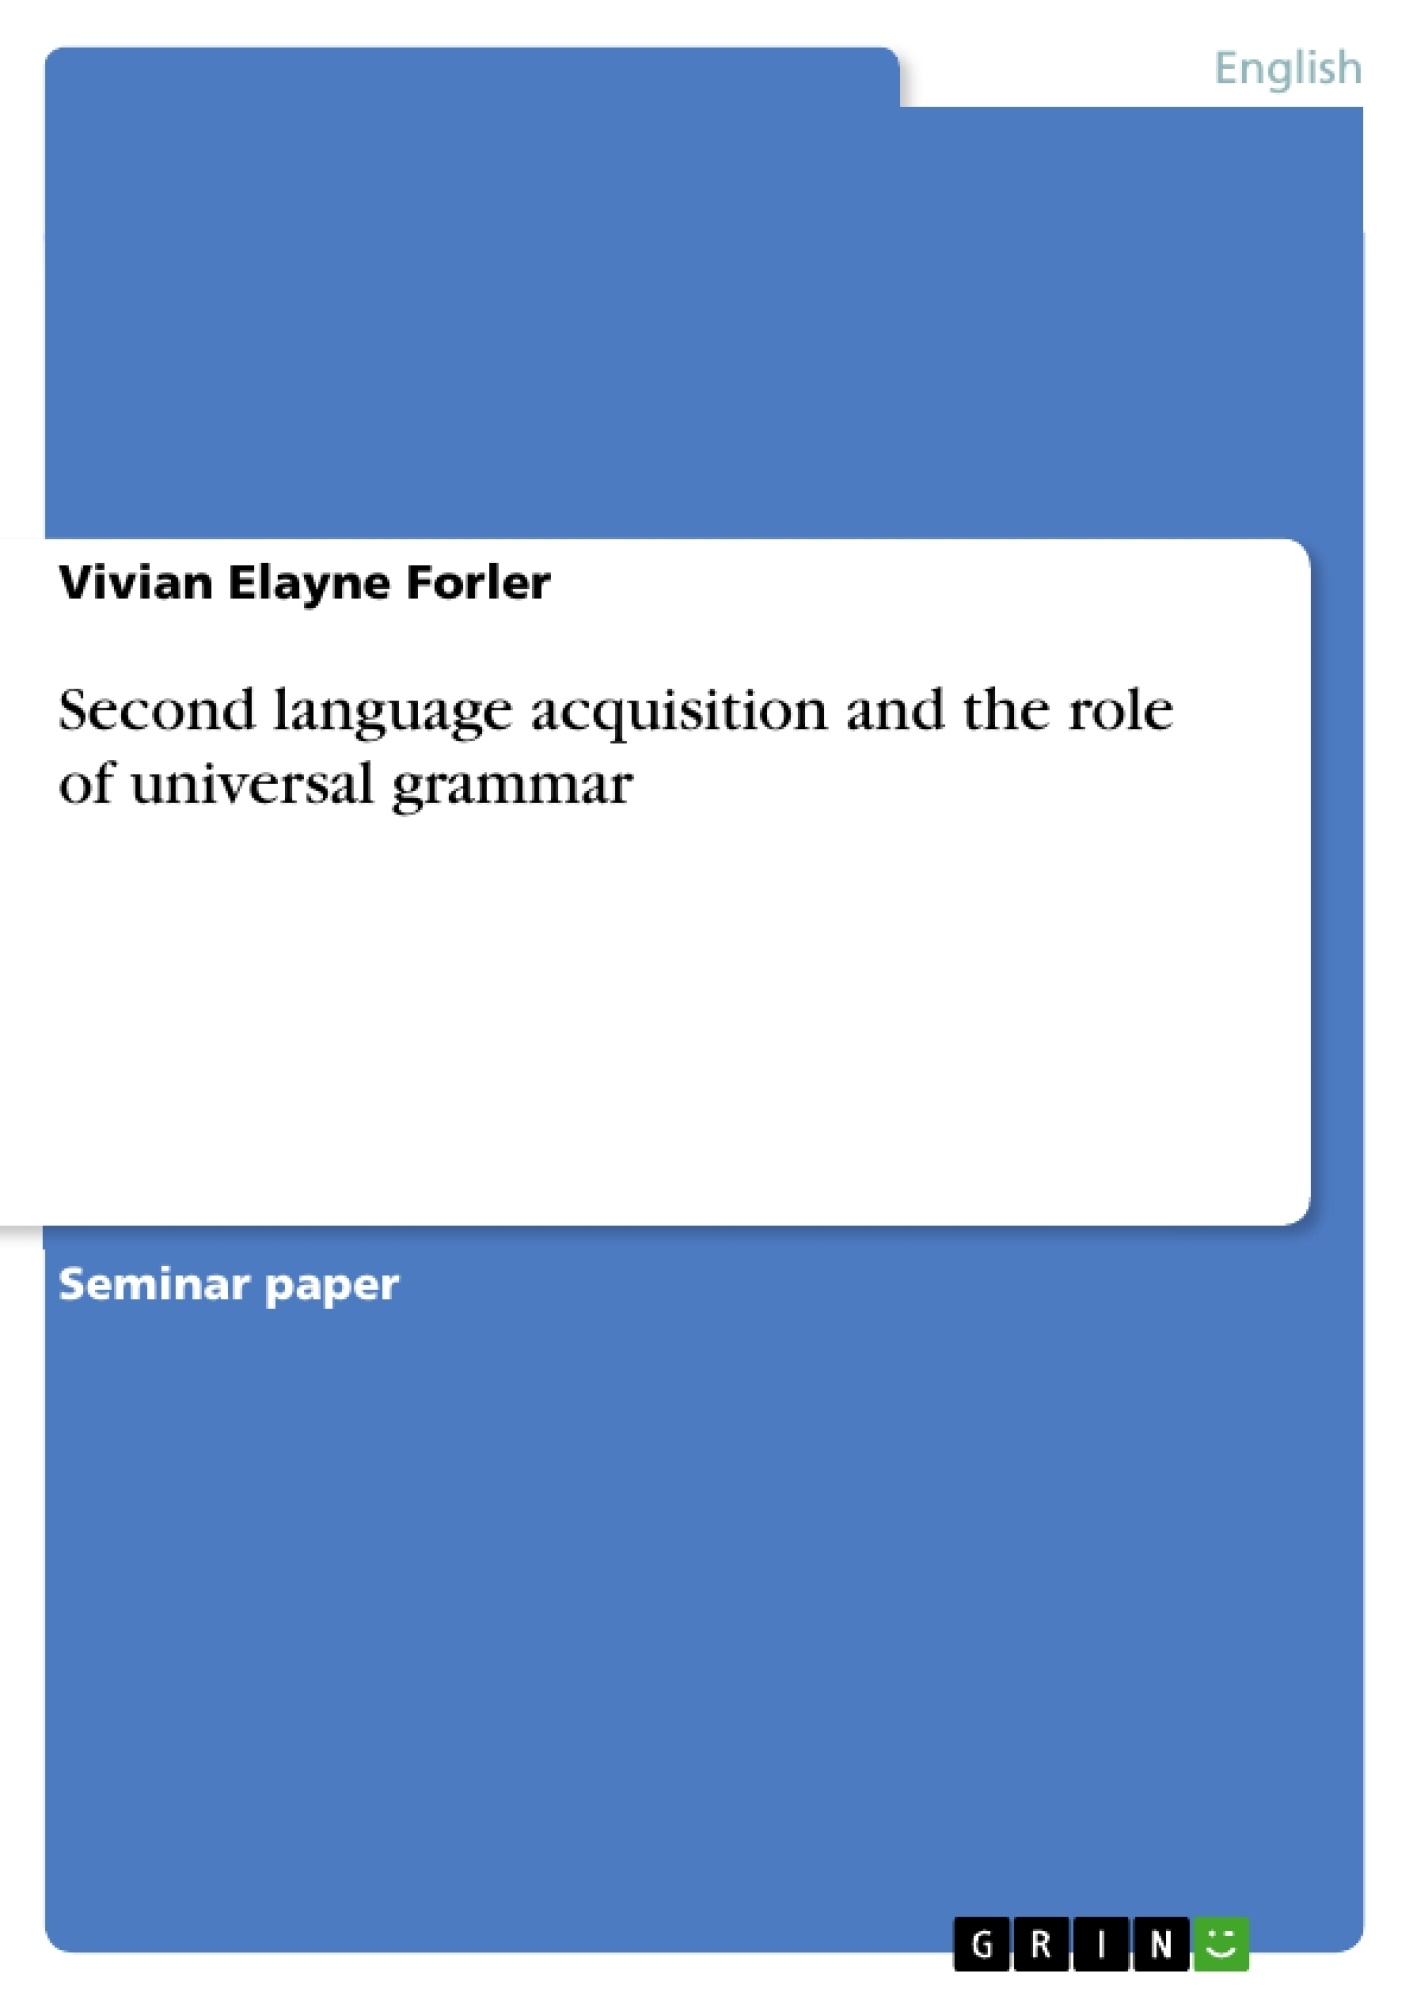 Title: Second language acquisition and the role of universal grammar